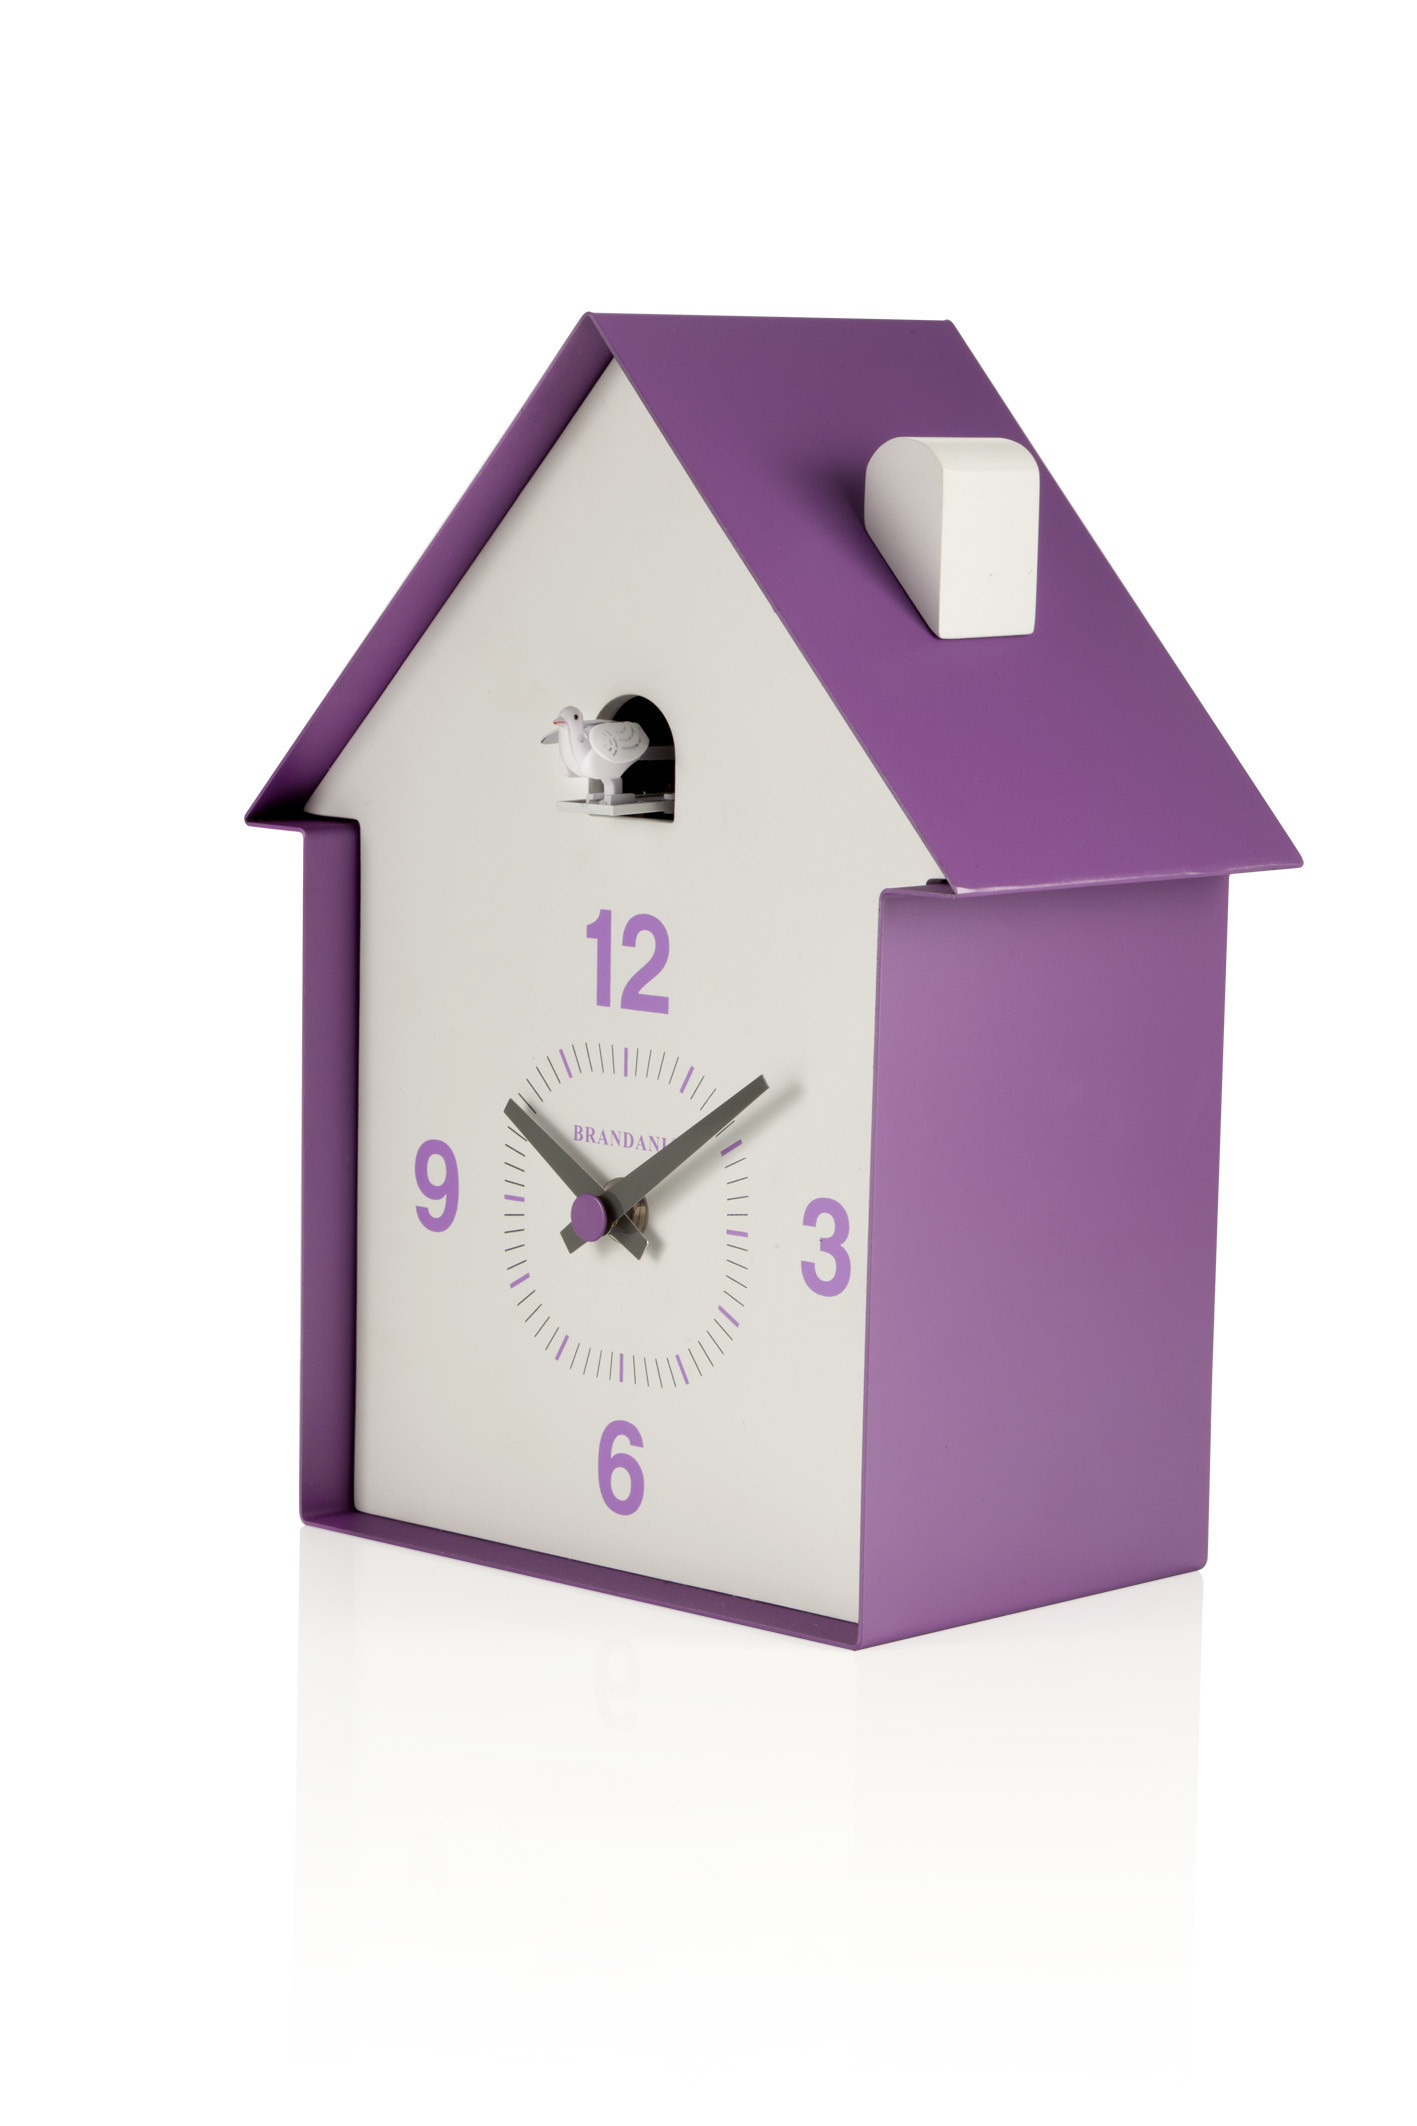 photo of 'Brandani Gift Group: HORLOGE A COUCOU HOUSE LILAS BOIS/METAL'